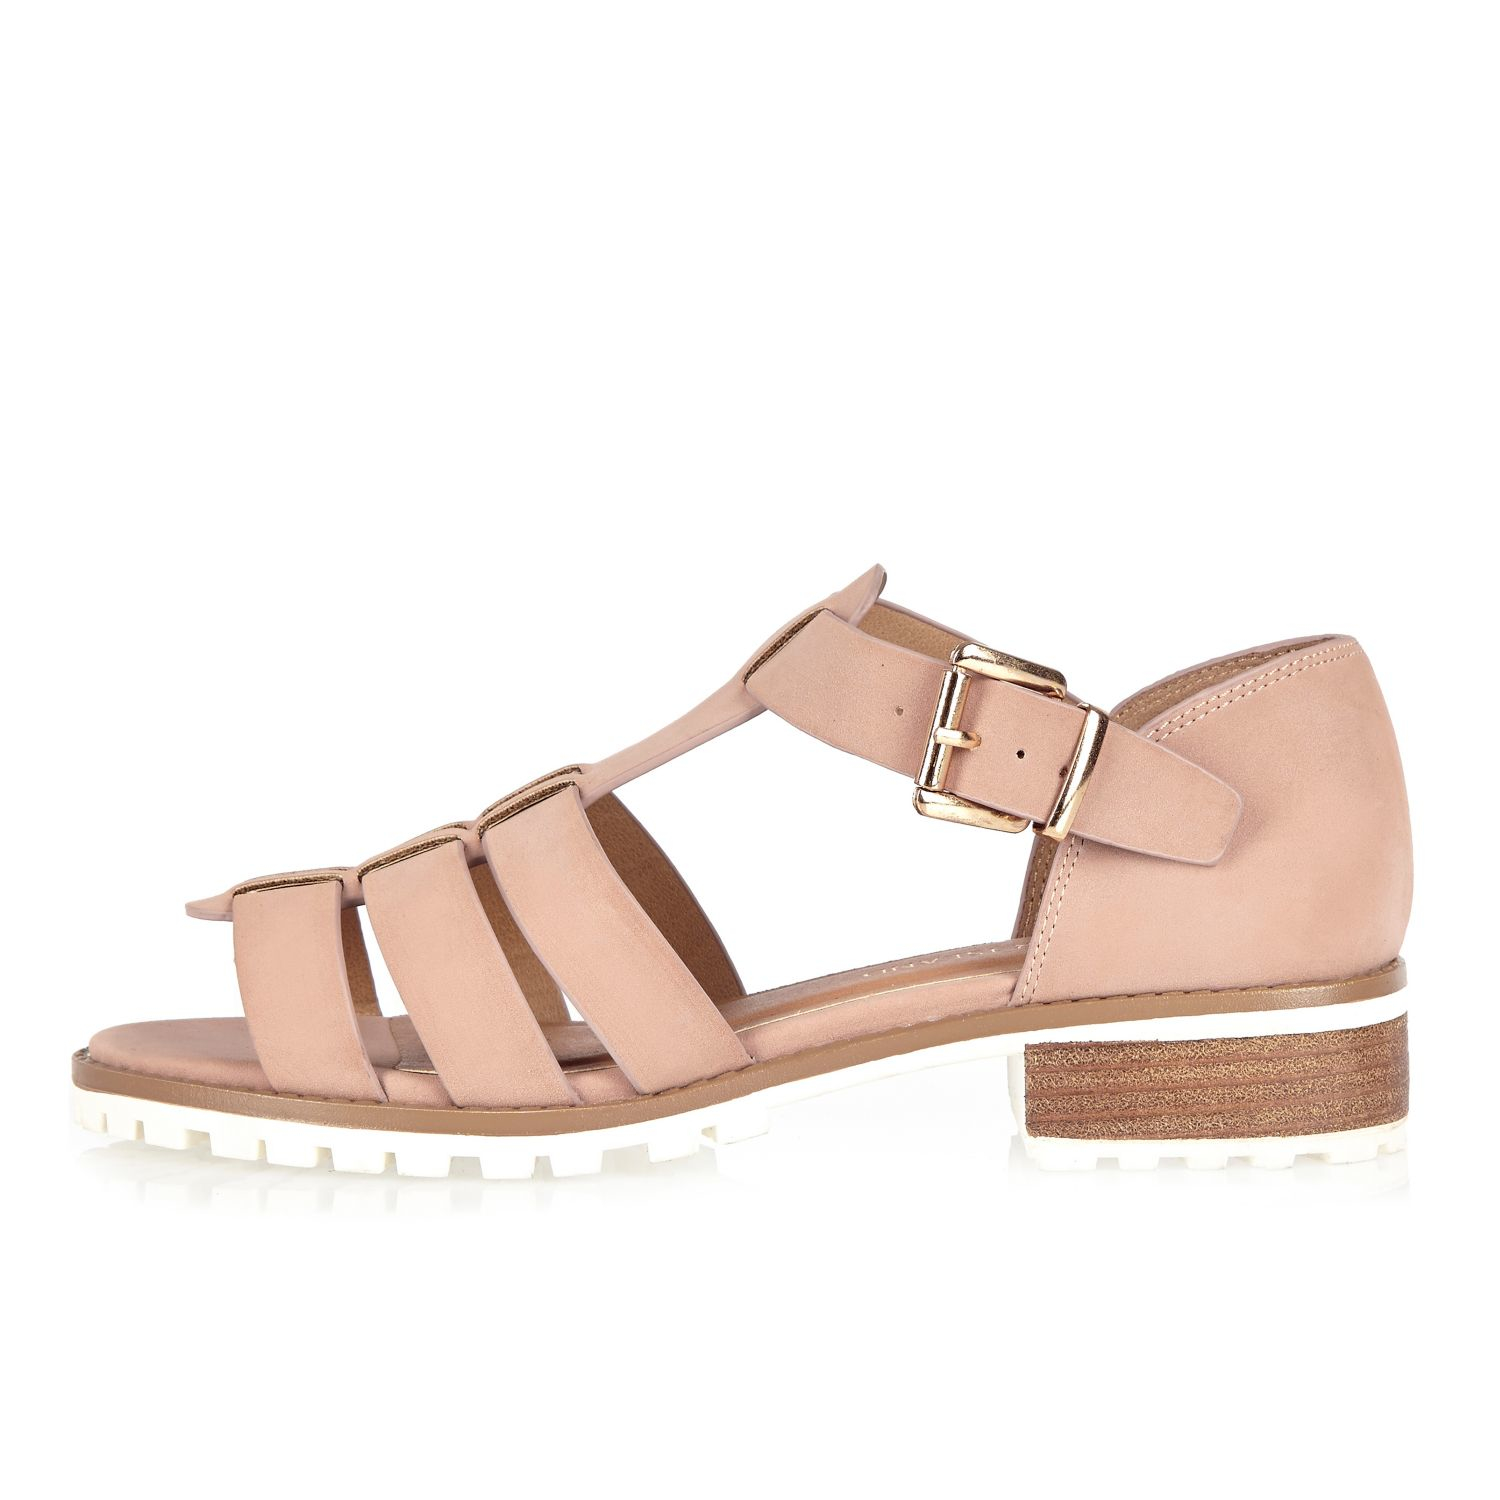 3b34d93e5a5f3b Lyst - River Island Pink Strappy Open Toe Geek Sandals in Pink